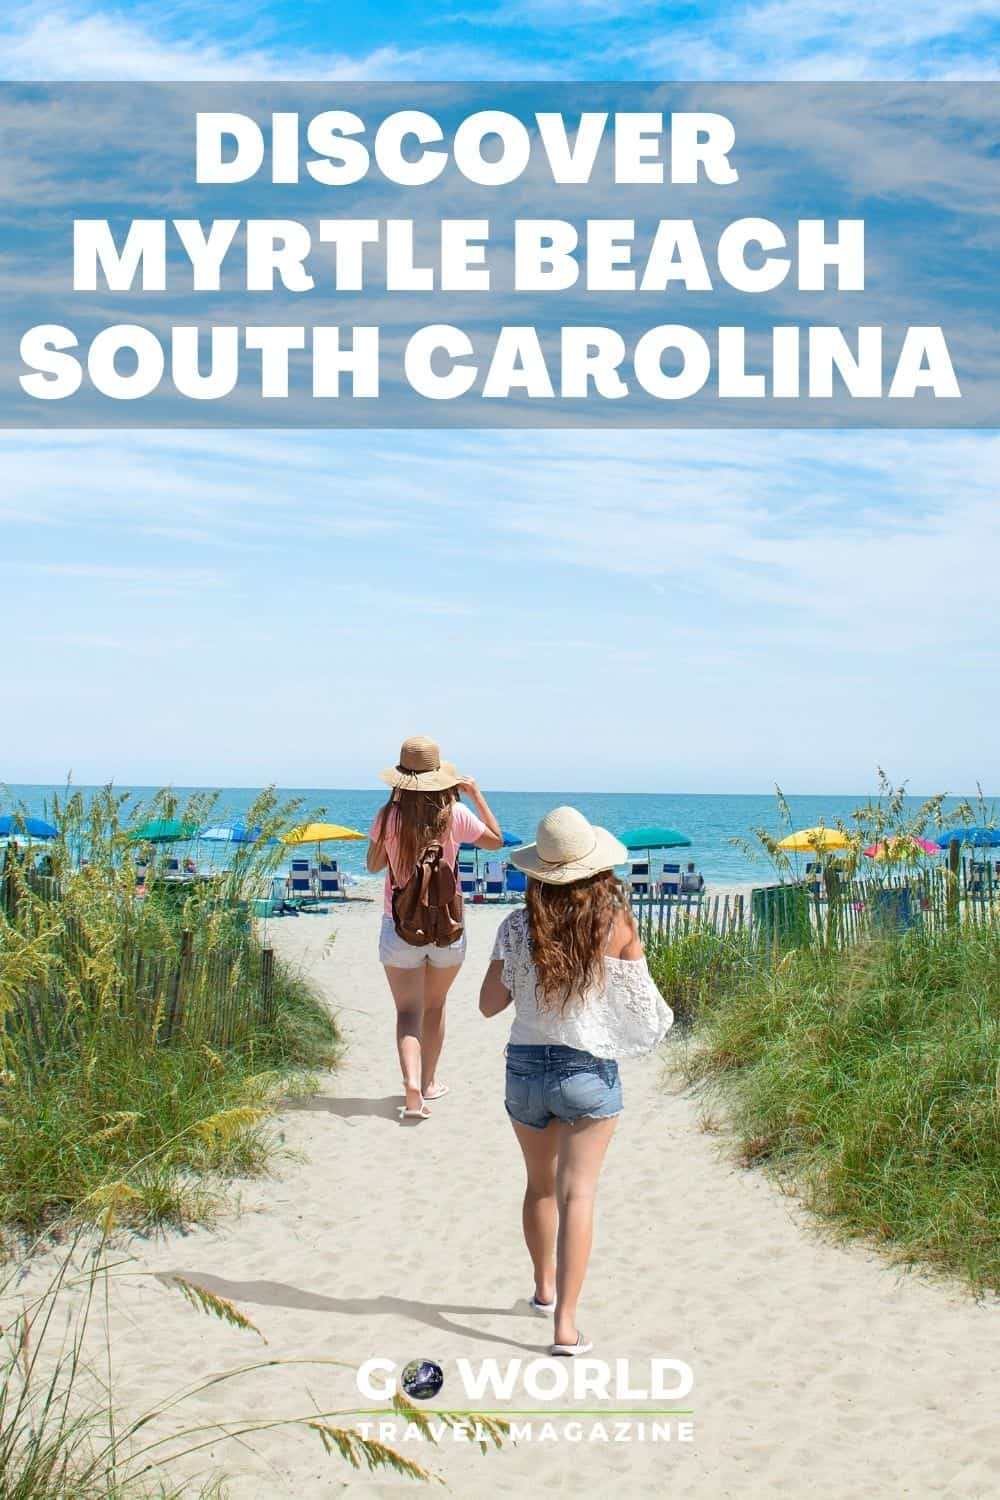 Headed to the beach this summer? Myrtle Beach, South Carolina is one of America's top beach destinations. Here's why. #Myrtlebeachvacation #myrtlebeachsouthcarolina #usabeachvacation